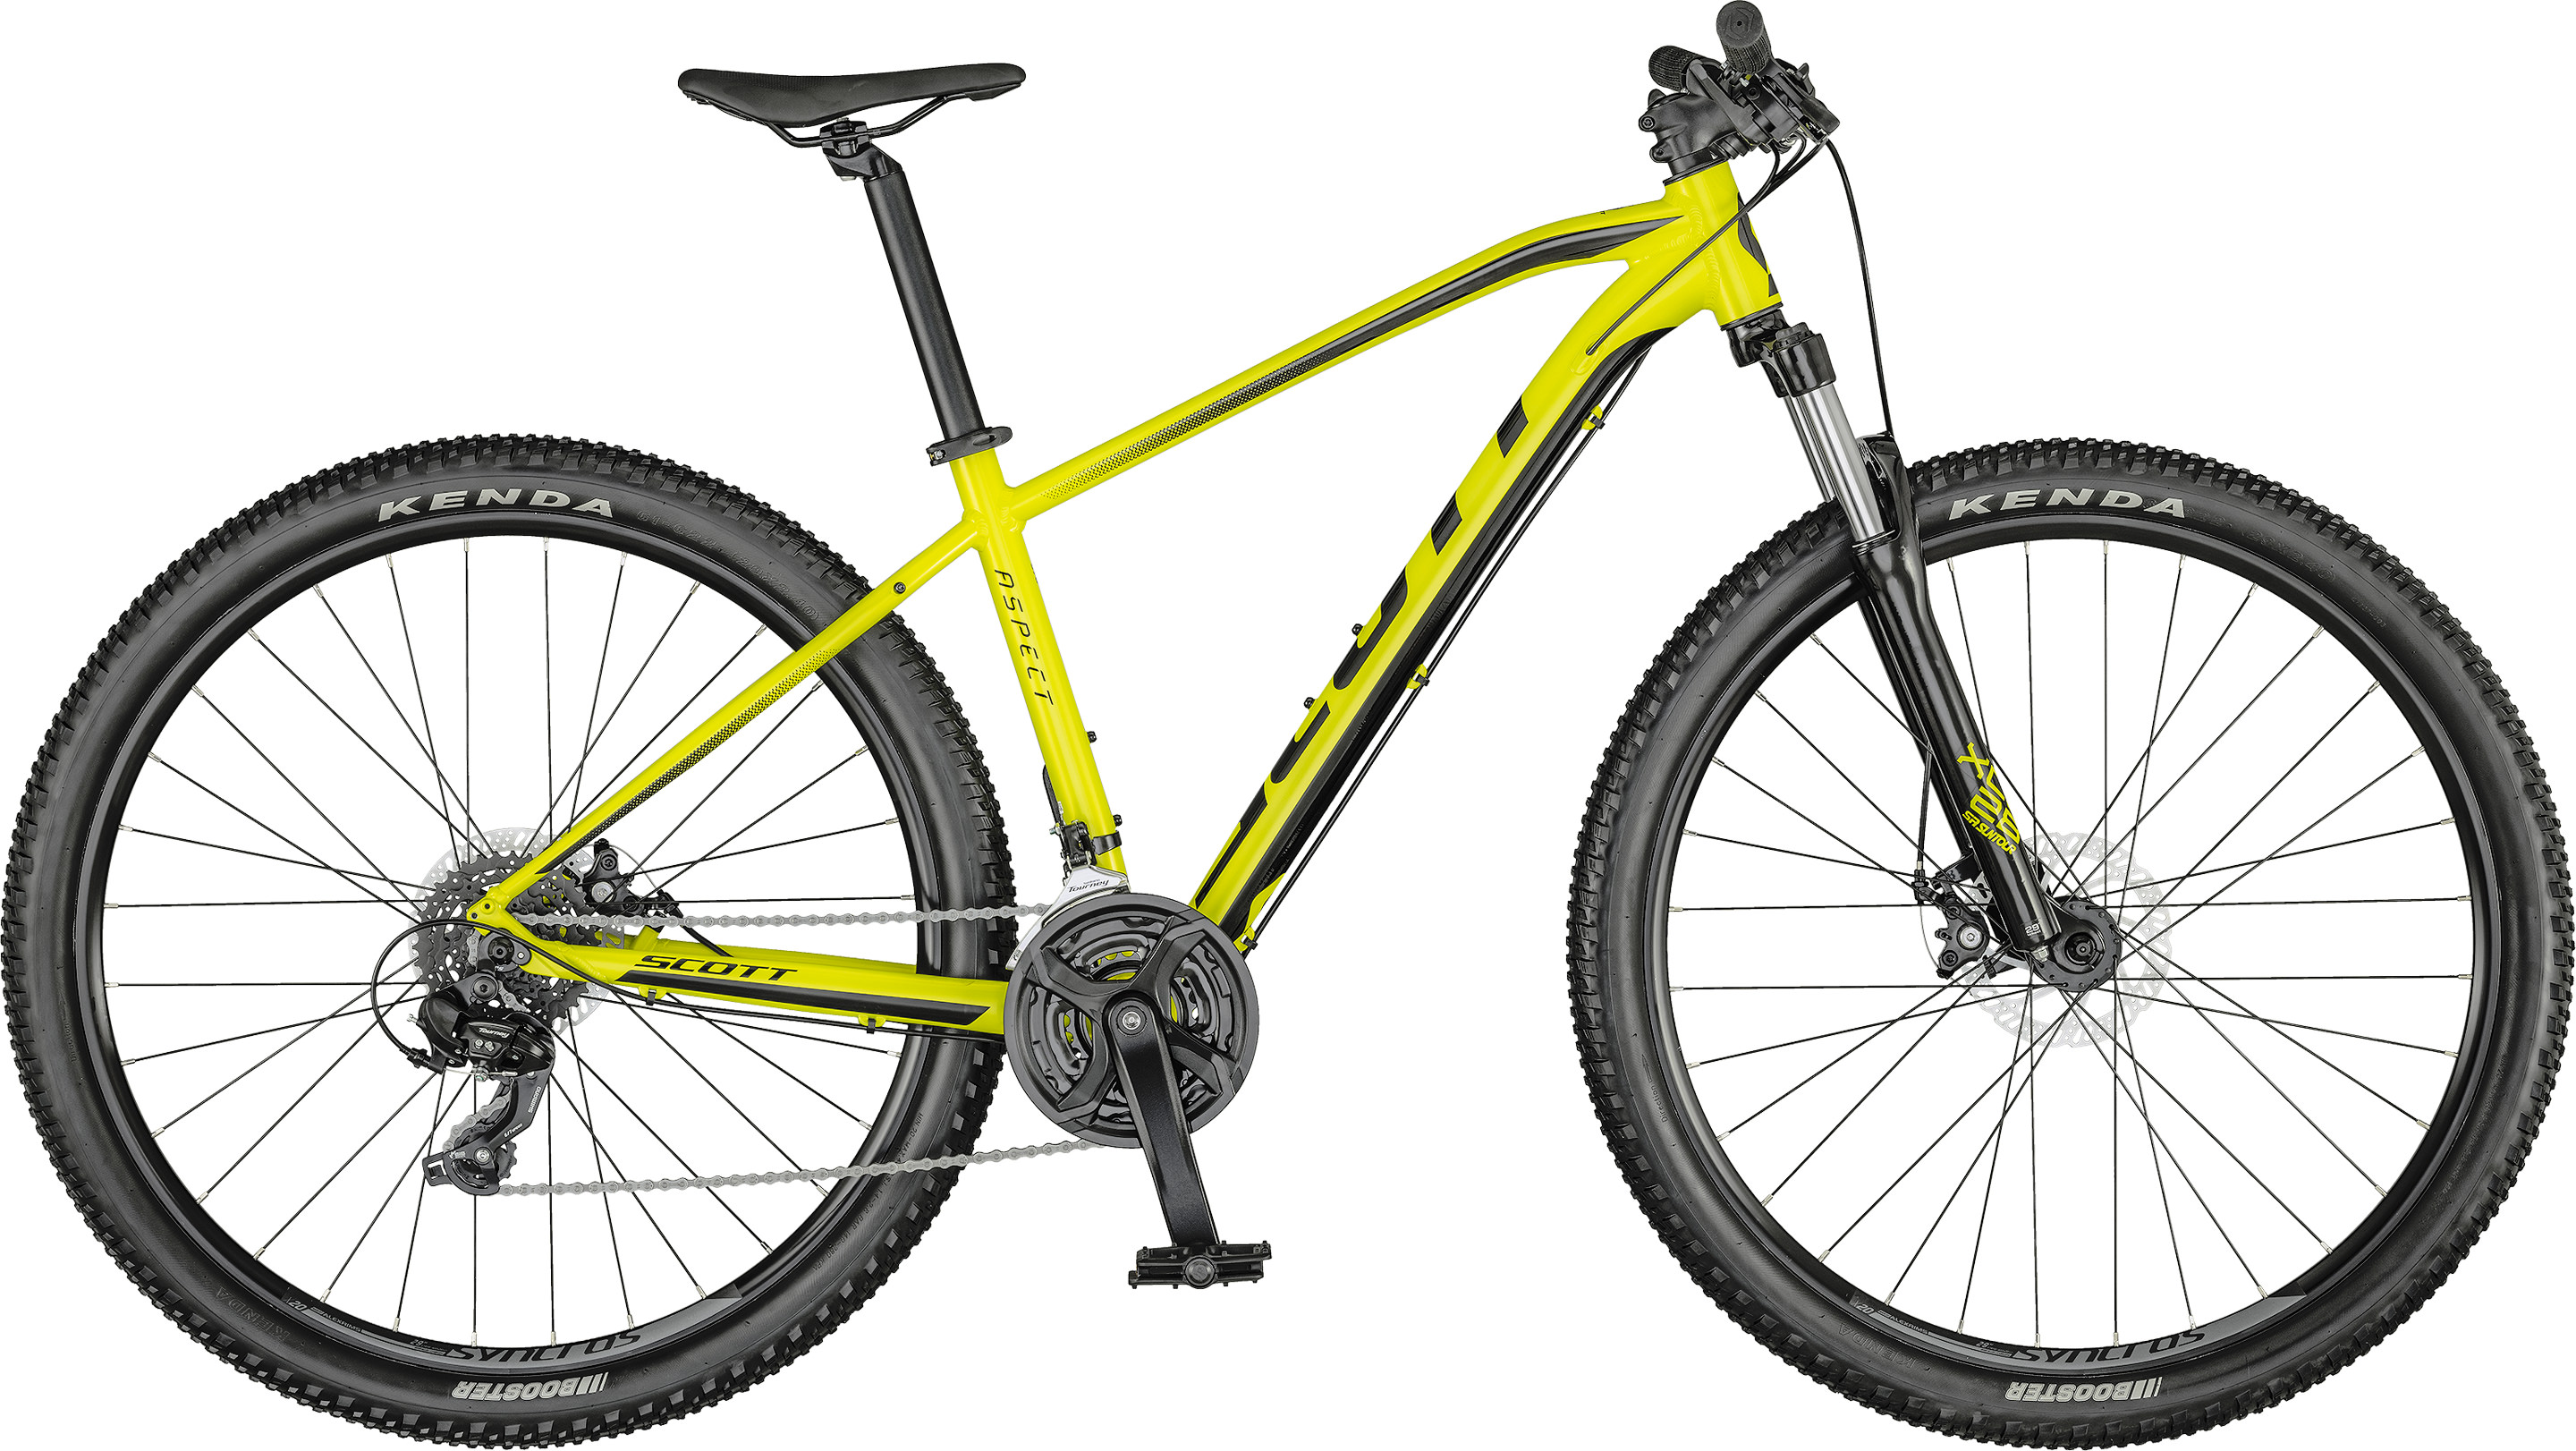 Aspect 970 yellow | Culture Vélo